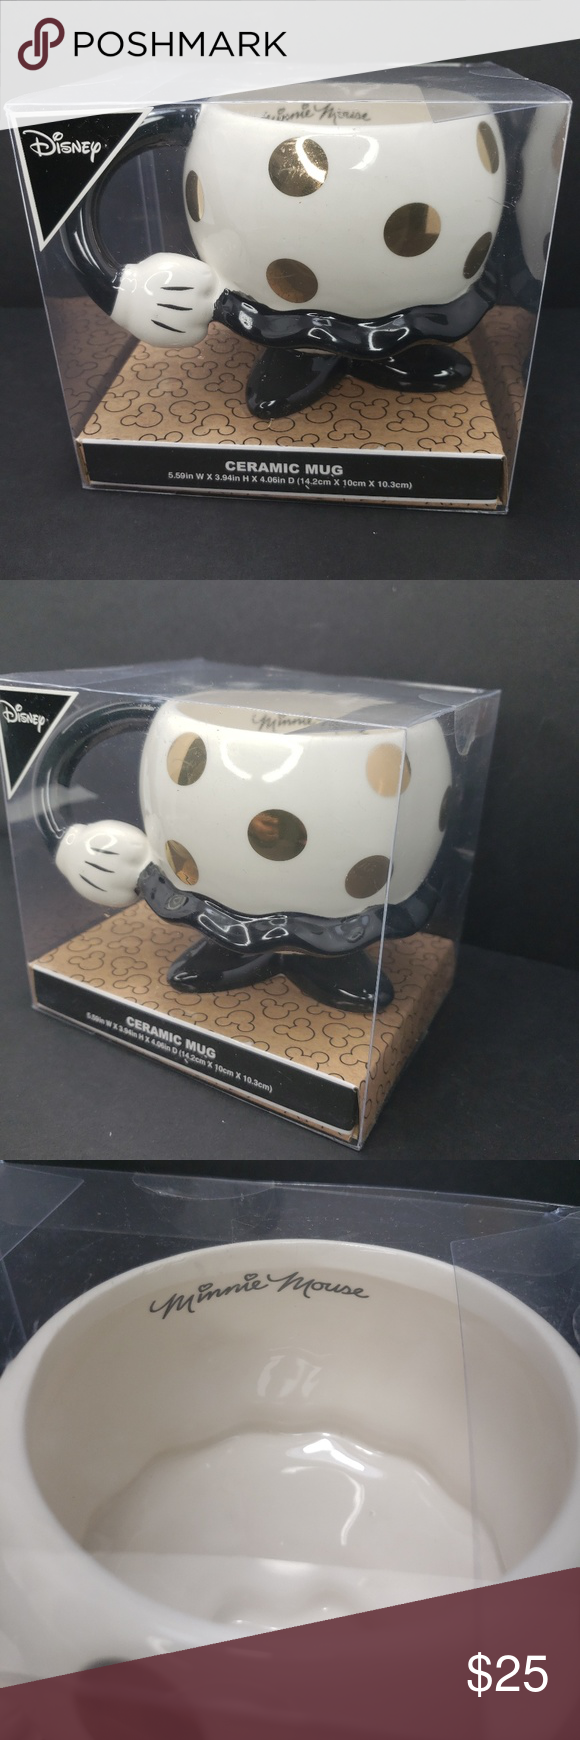 Minnie mouse Disney coffee mug from PRIMARK New in box seal coffee mug from Disney  Minnie mouse character  Material ceramic  Main color white with gold dots around the cup  It's from PRIMARK Primark Other #disneycoffeemugs